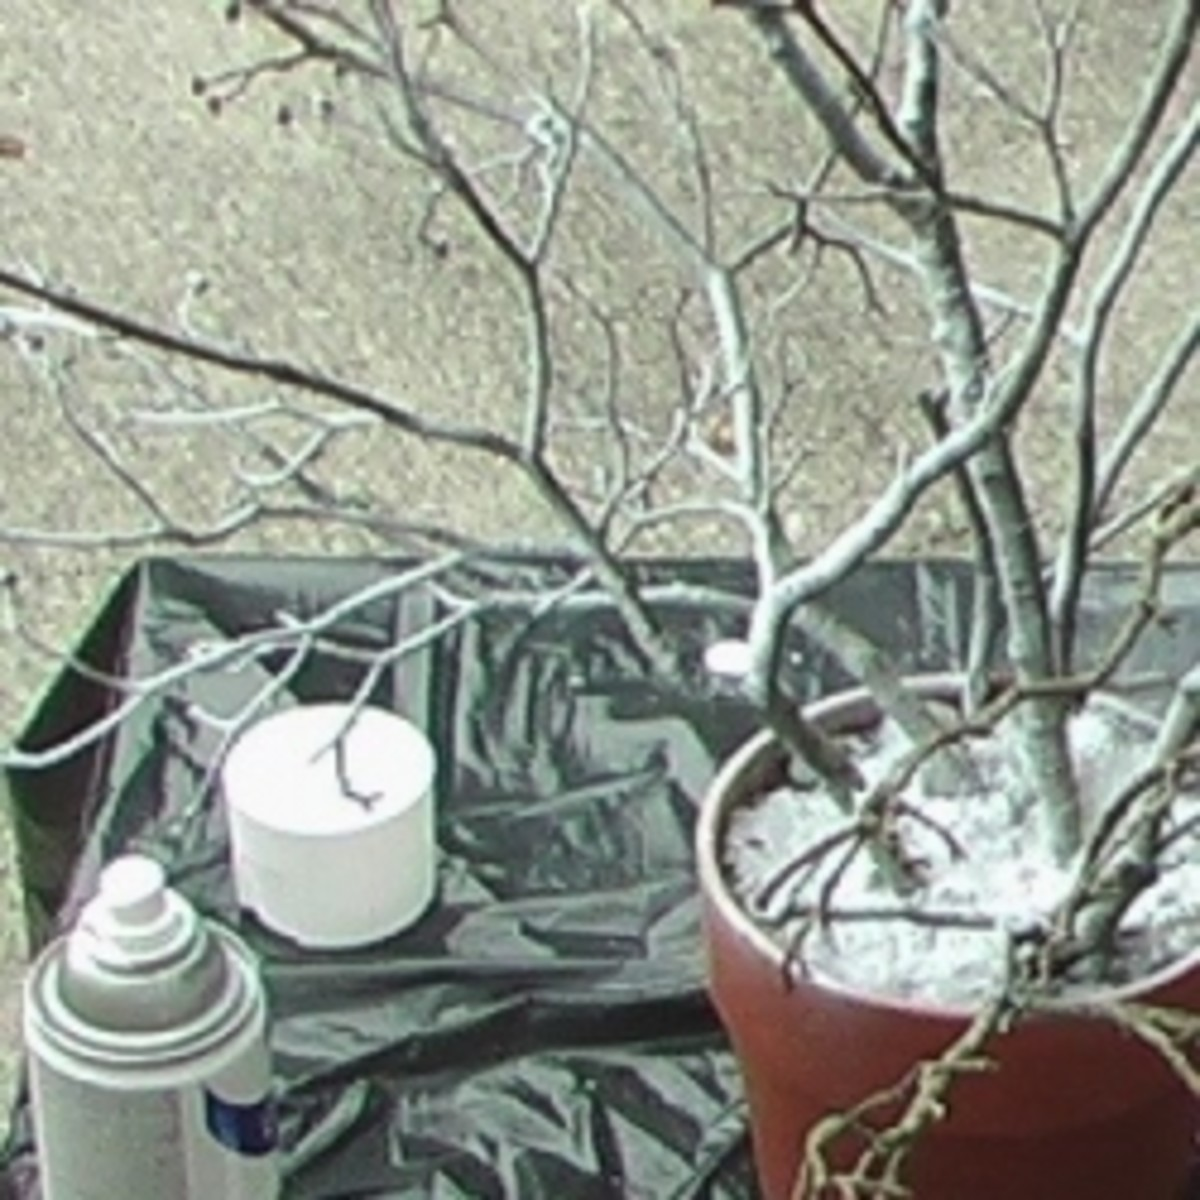 Branches from a real tree, cement mix, clay pot and white spray paint can be made into a gift money tree for any occasion.